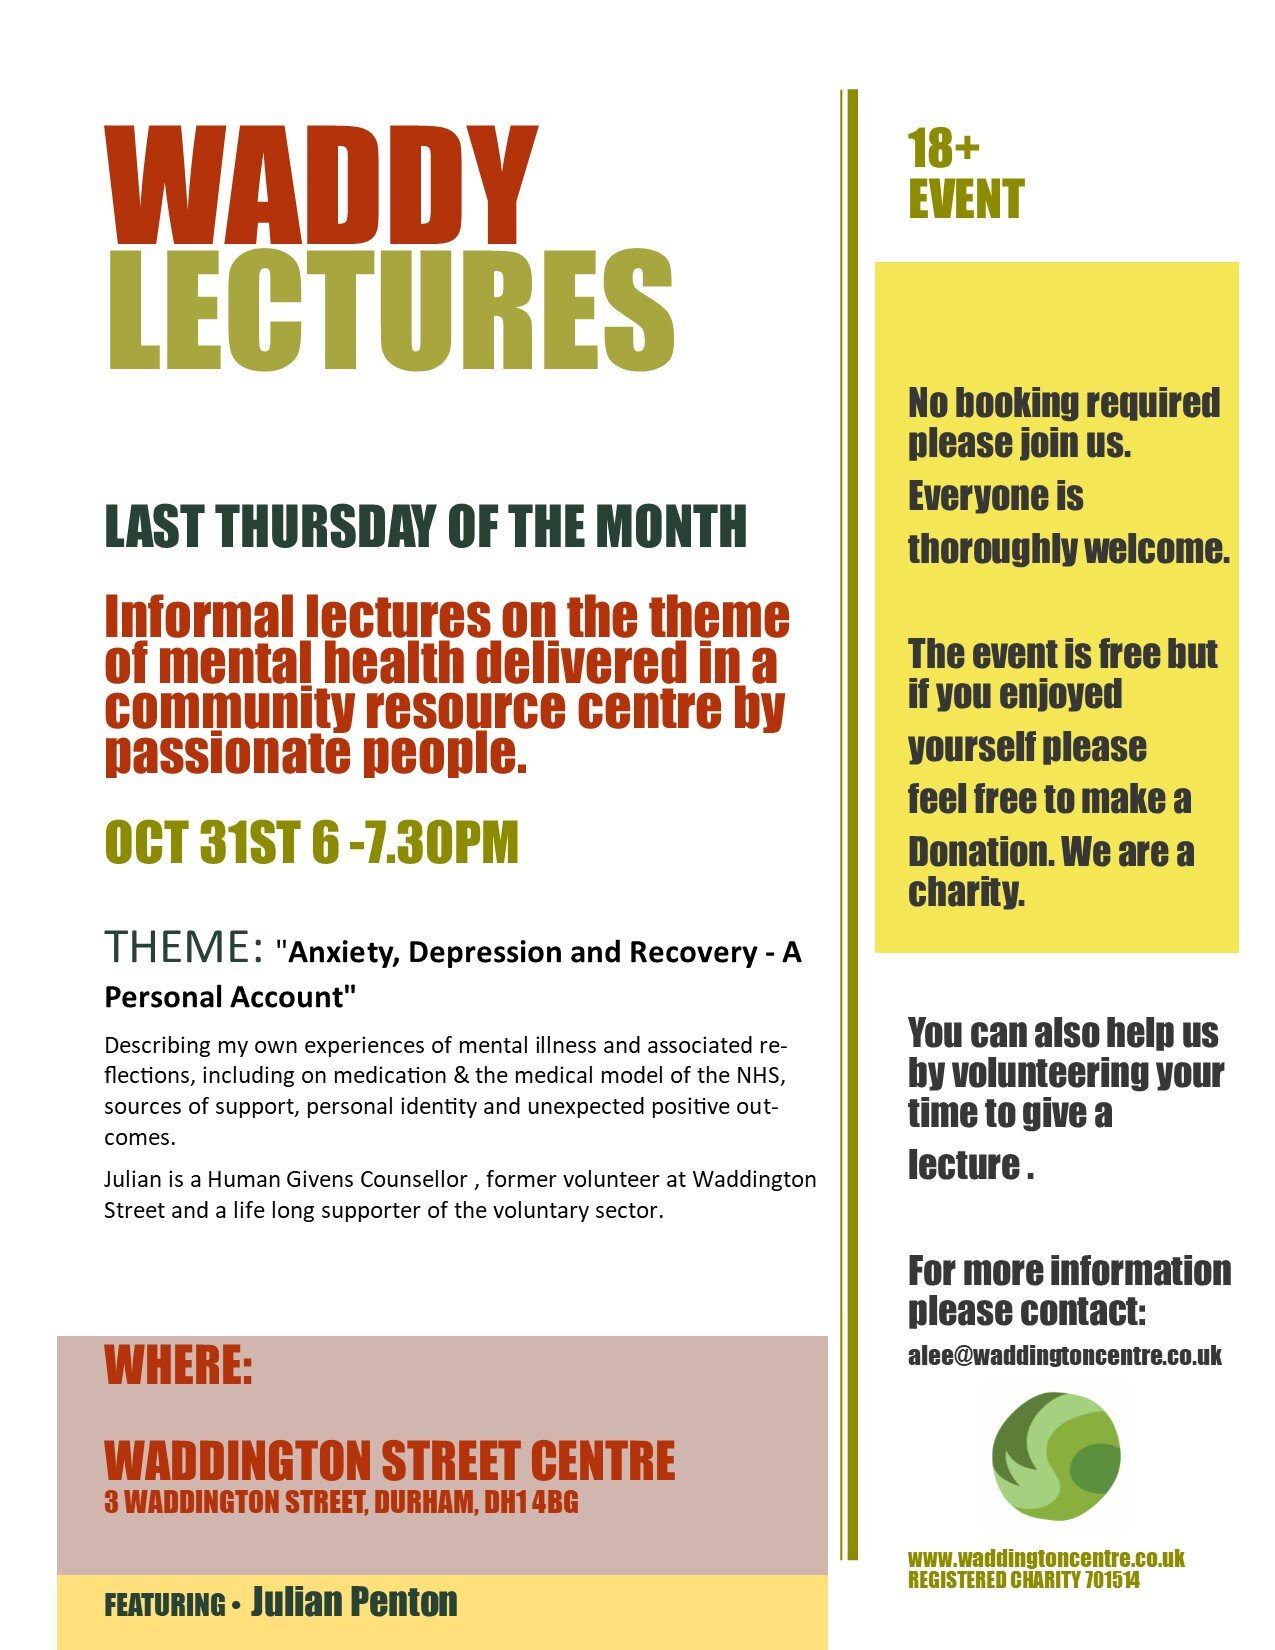 waddy lecture poster October.jpg